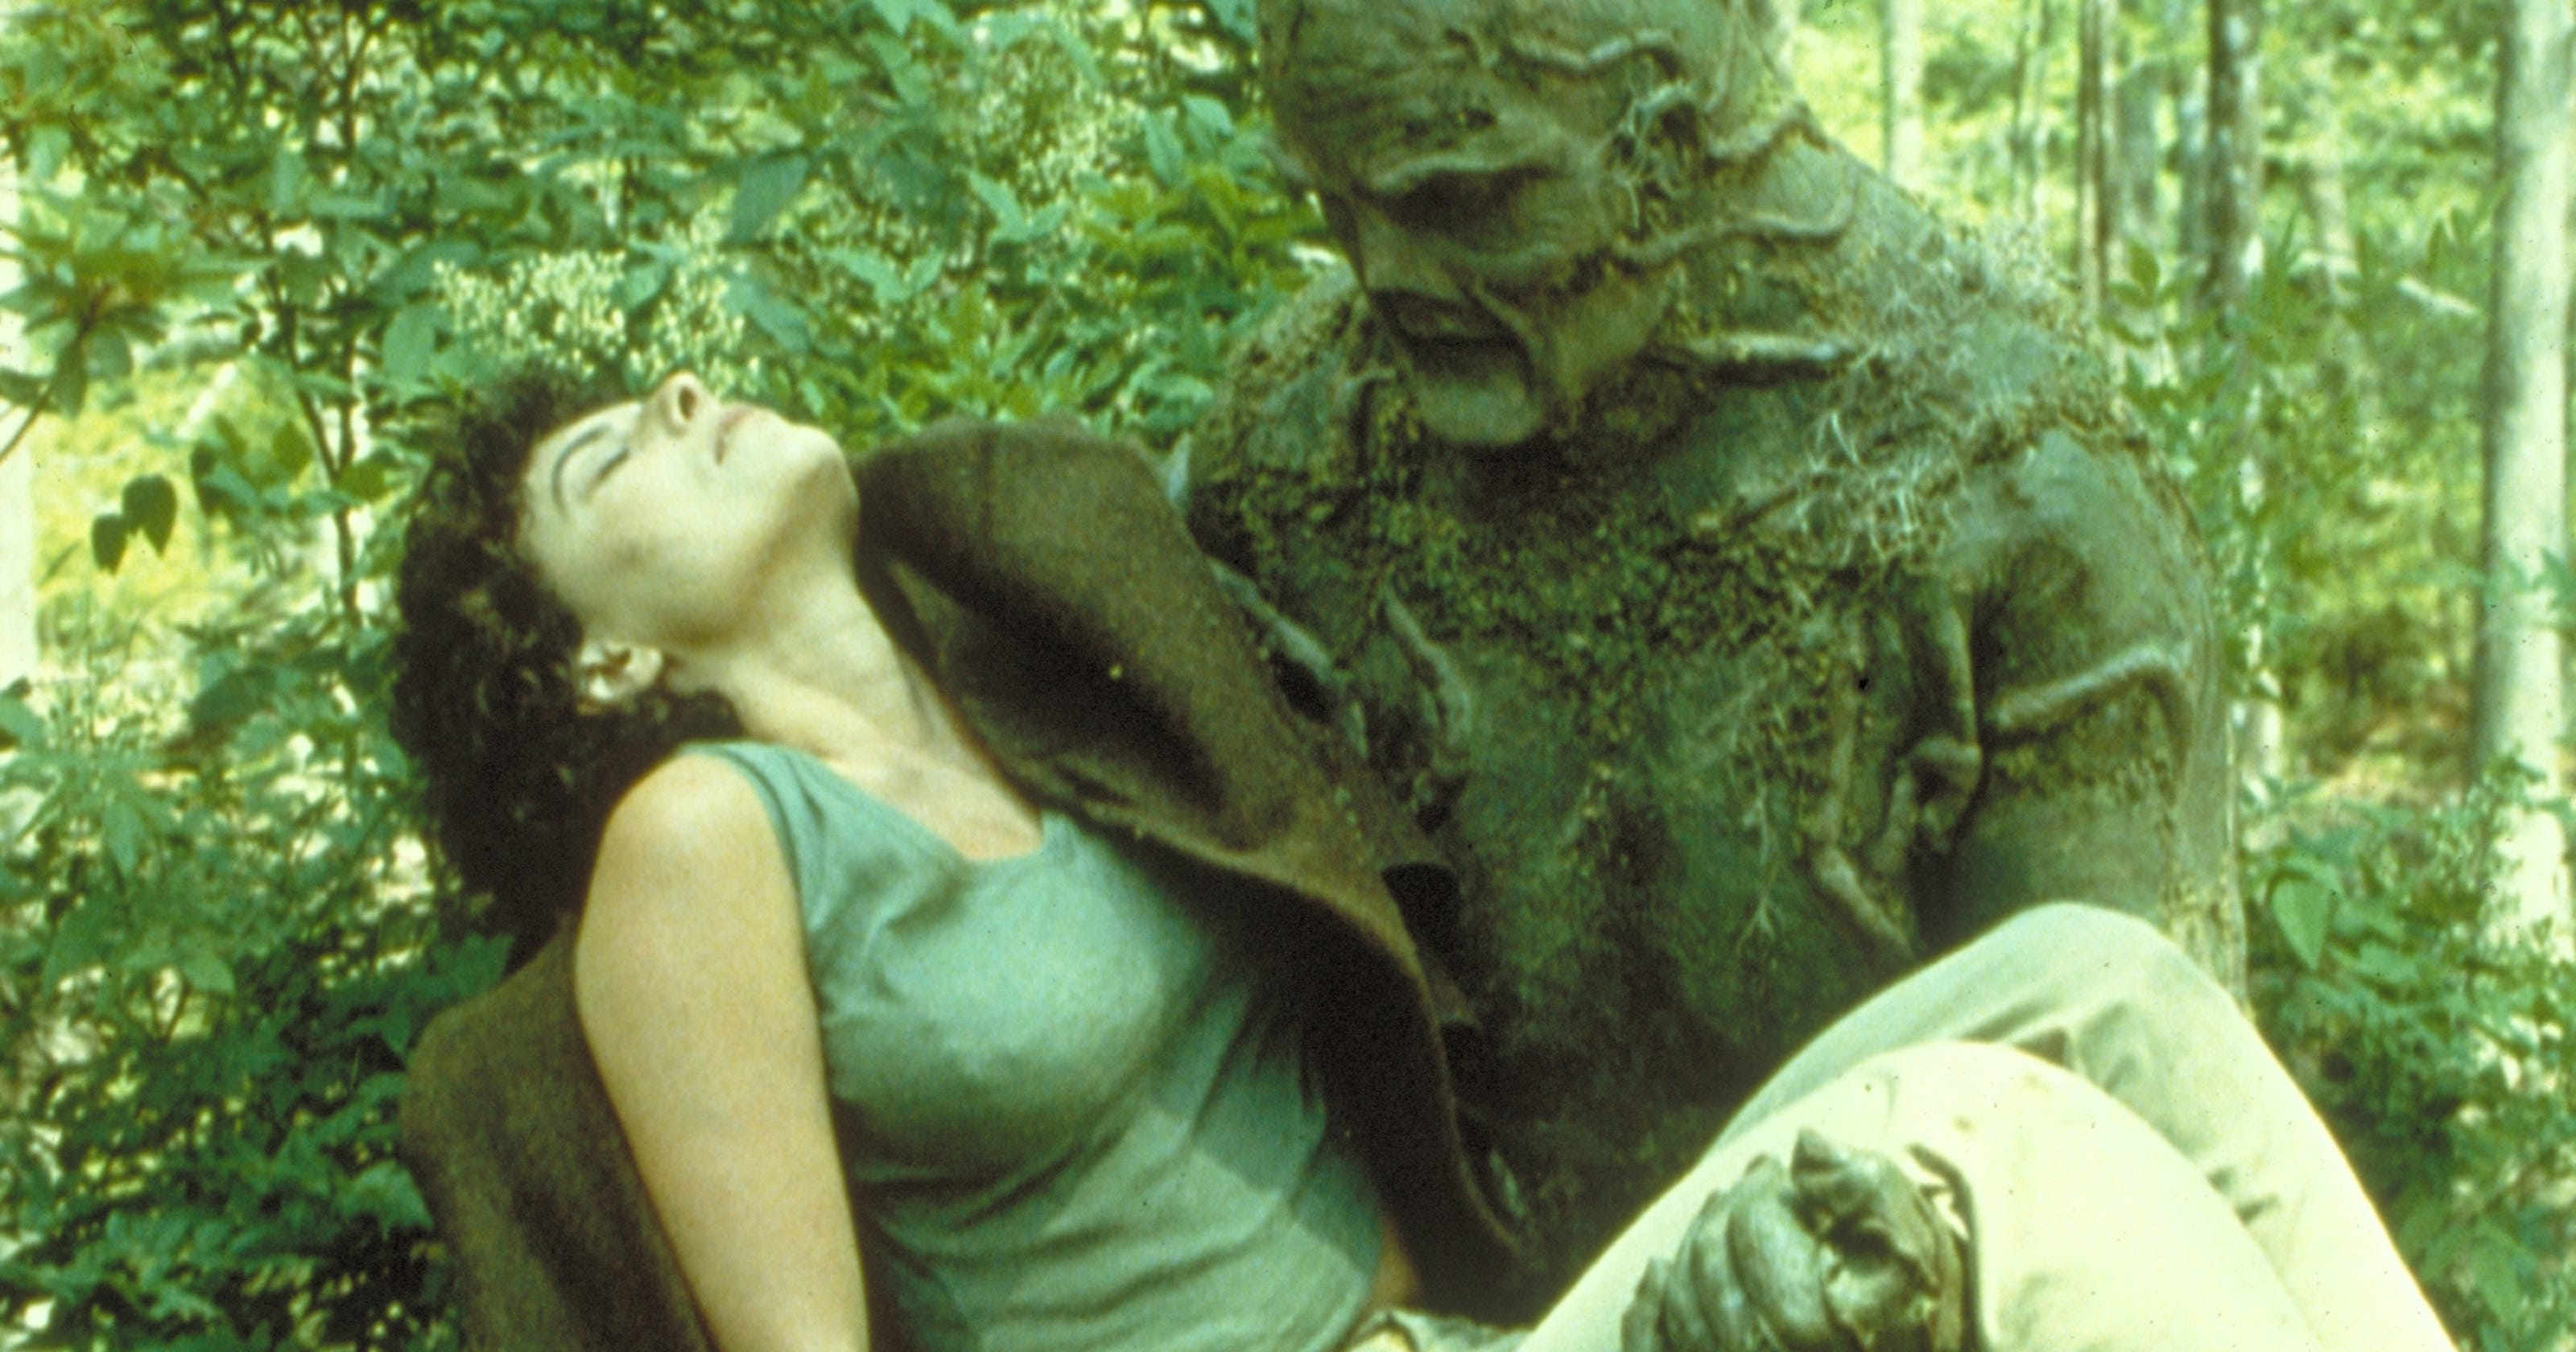 Adrienne barbeau swamp thing wild tribute by sexy g mods - 1 8